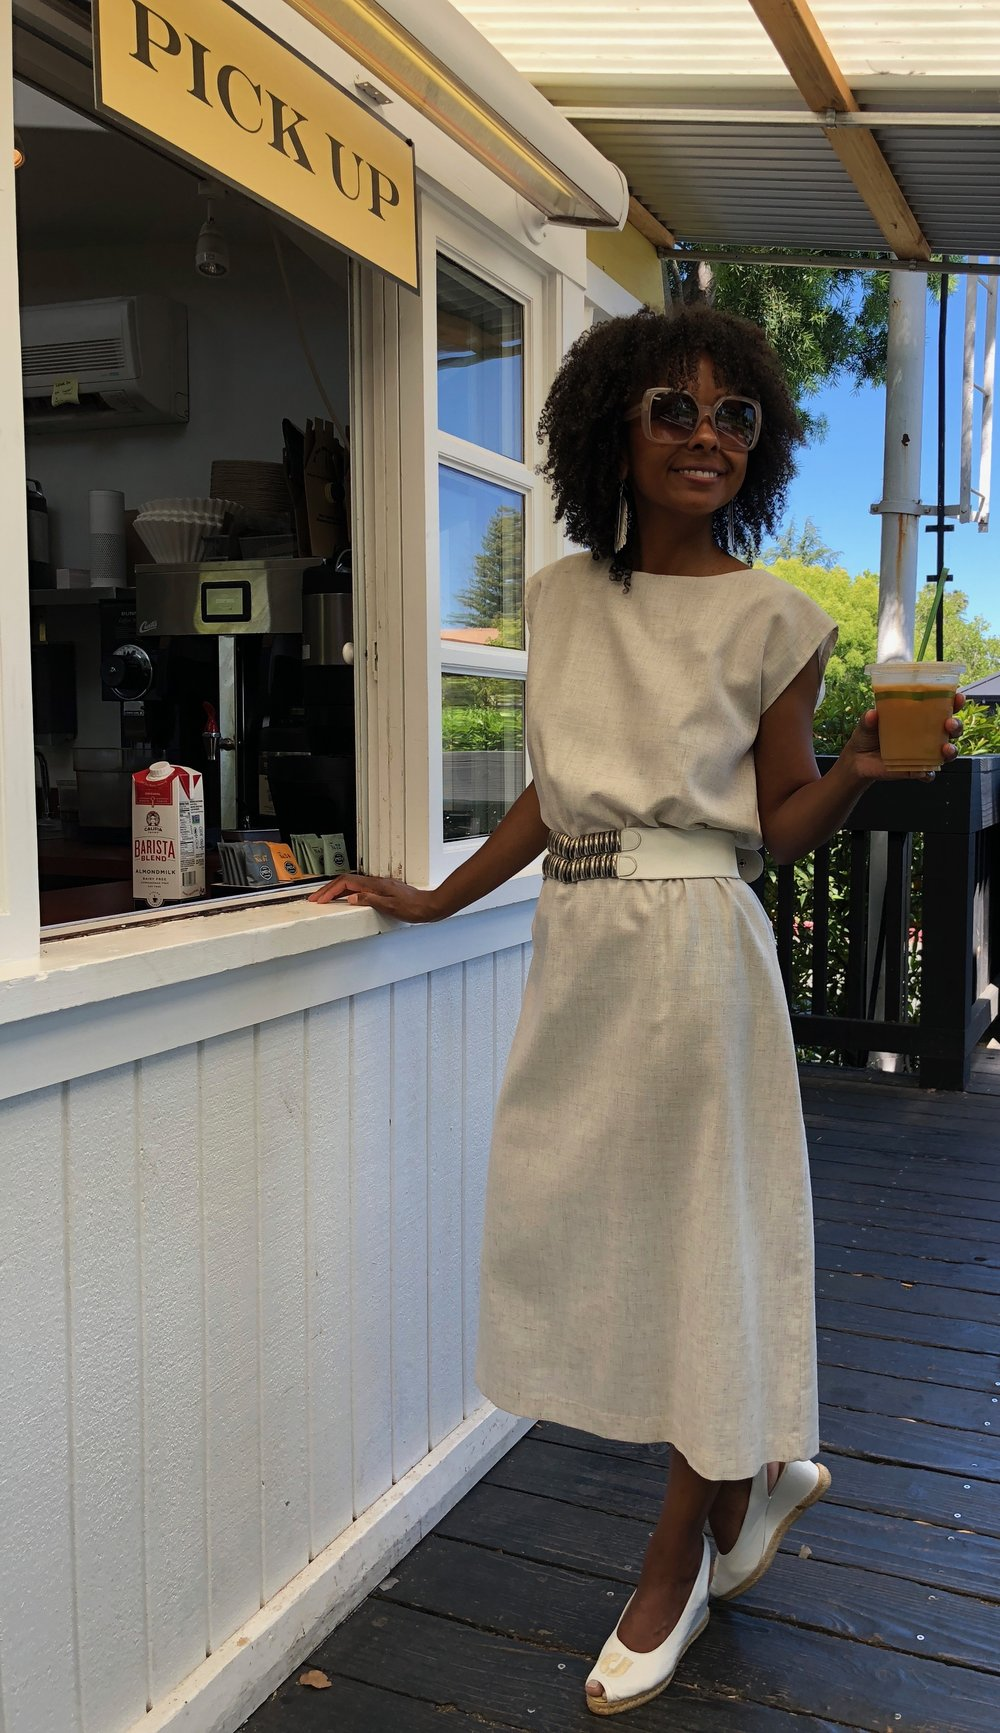 Photos taken at  Mini Model Bakery  in Yountville where the iced coffee and homemade English muffins are a must. My sleeveless dress, leather belt and  Charles Jourdan slides  were too!